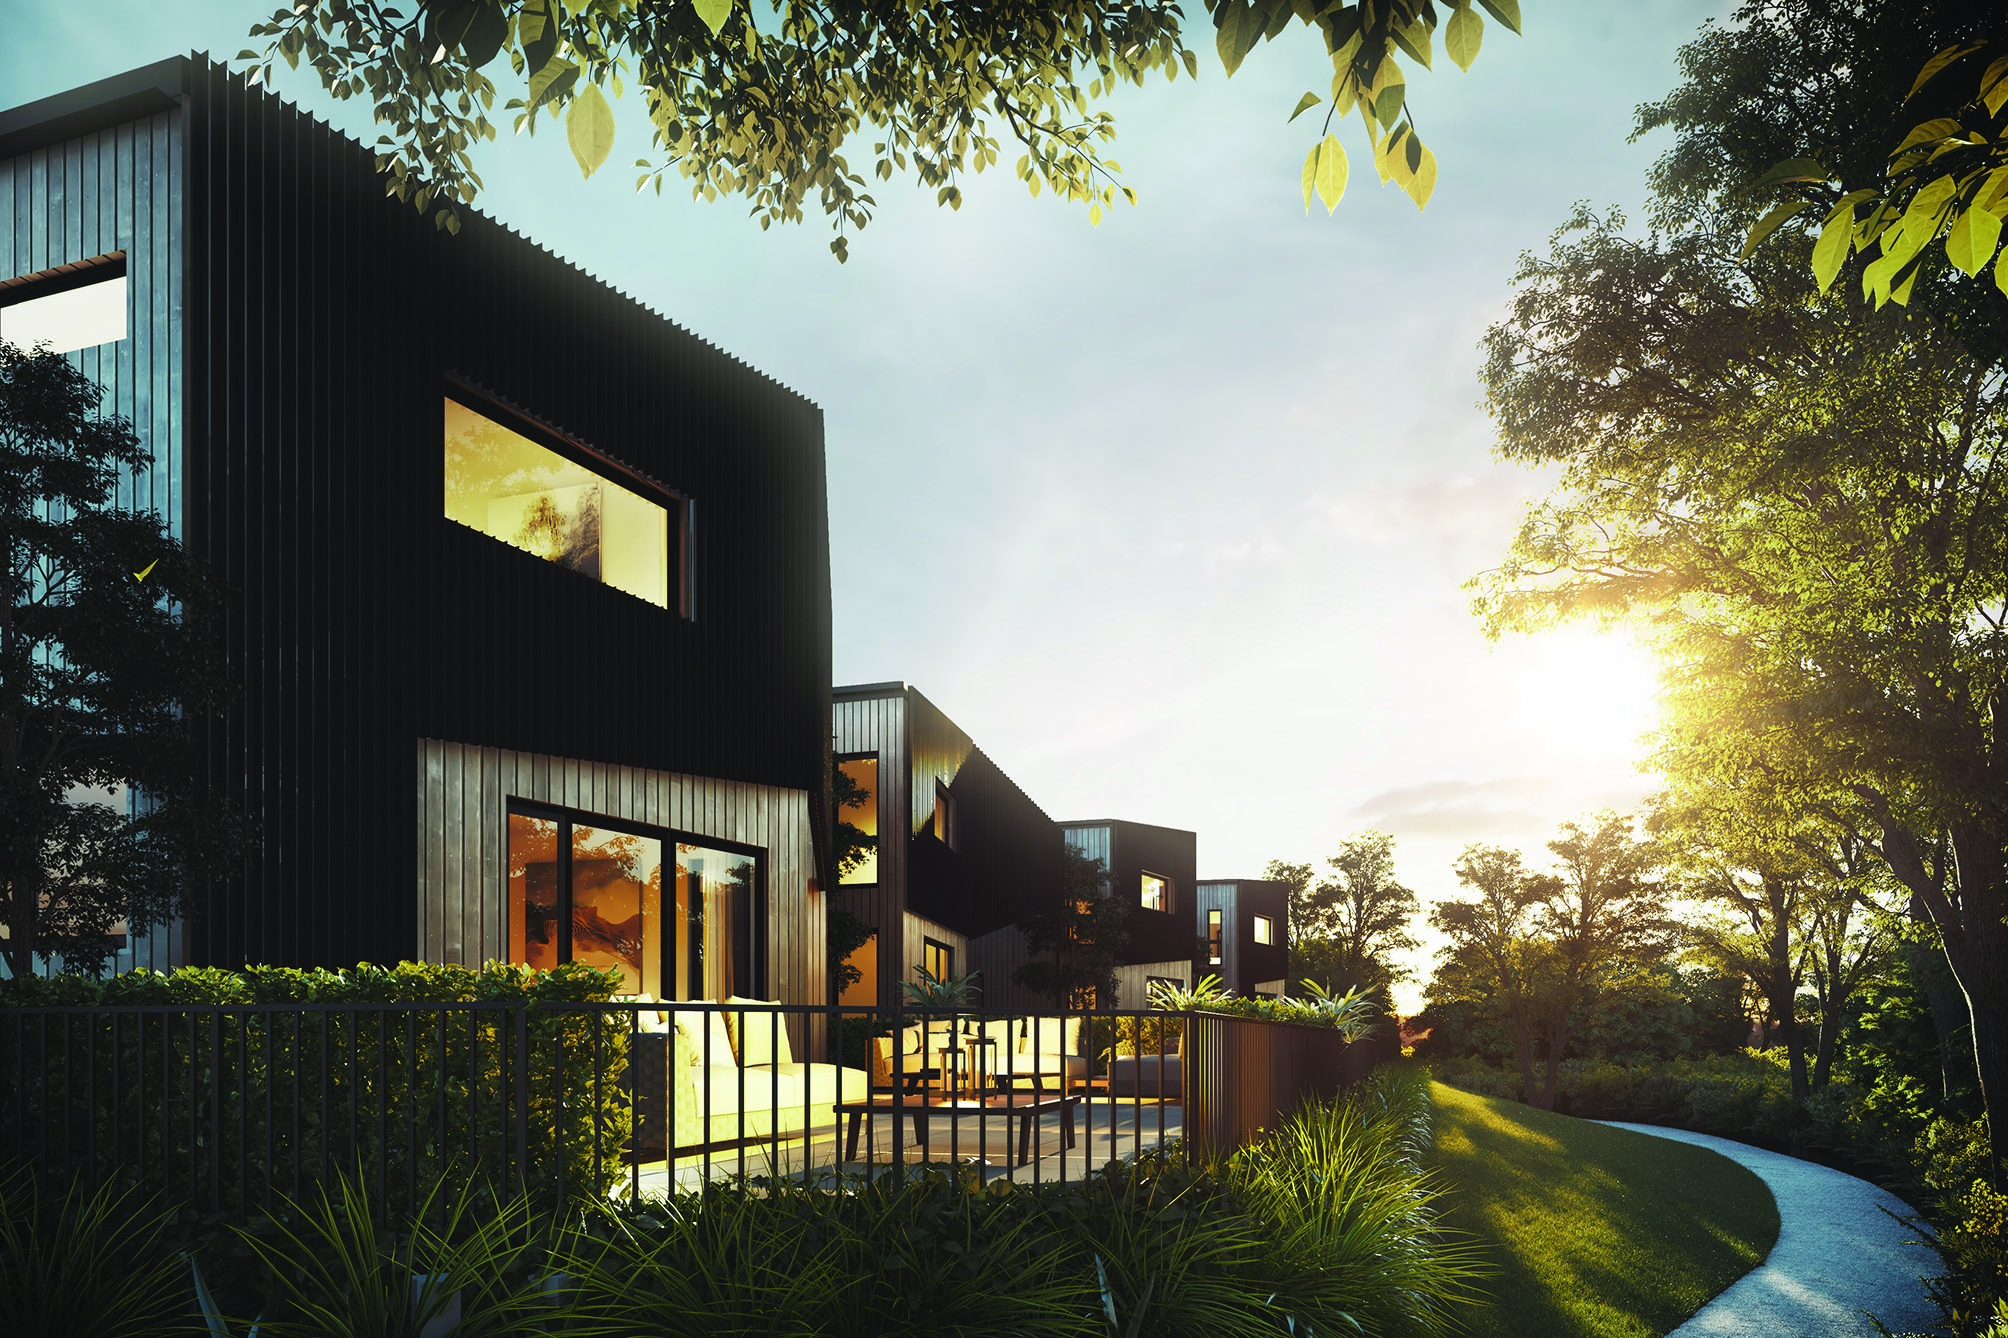 Headland Houses designed by Bossley architects